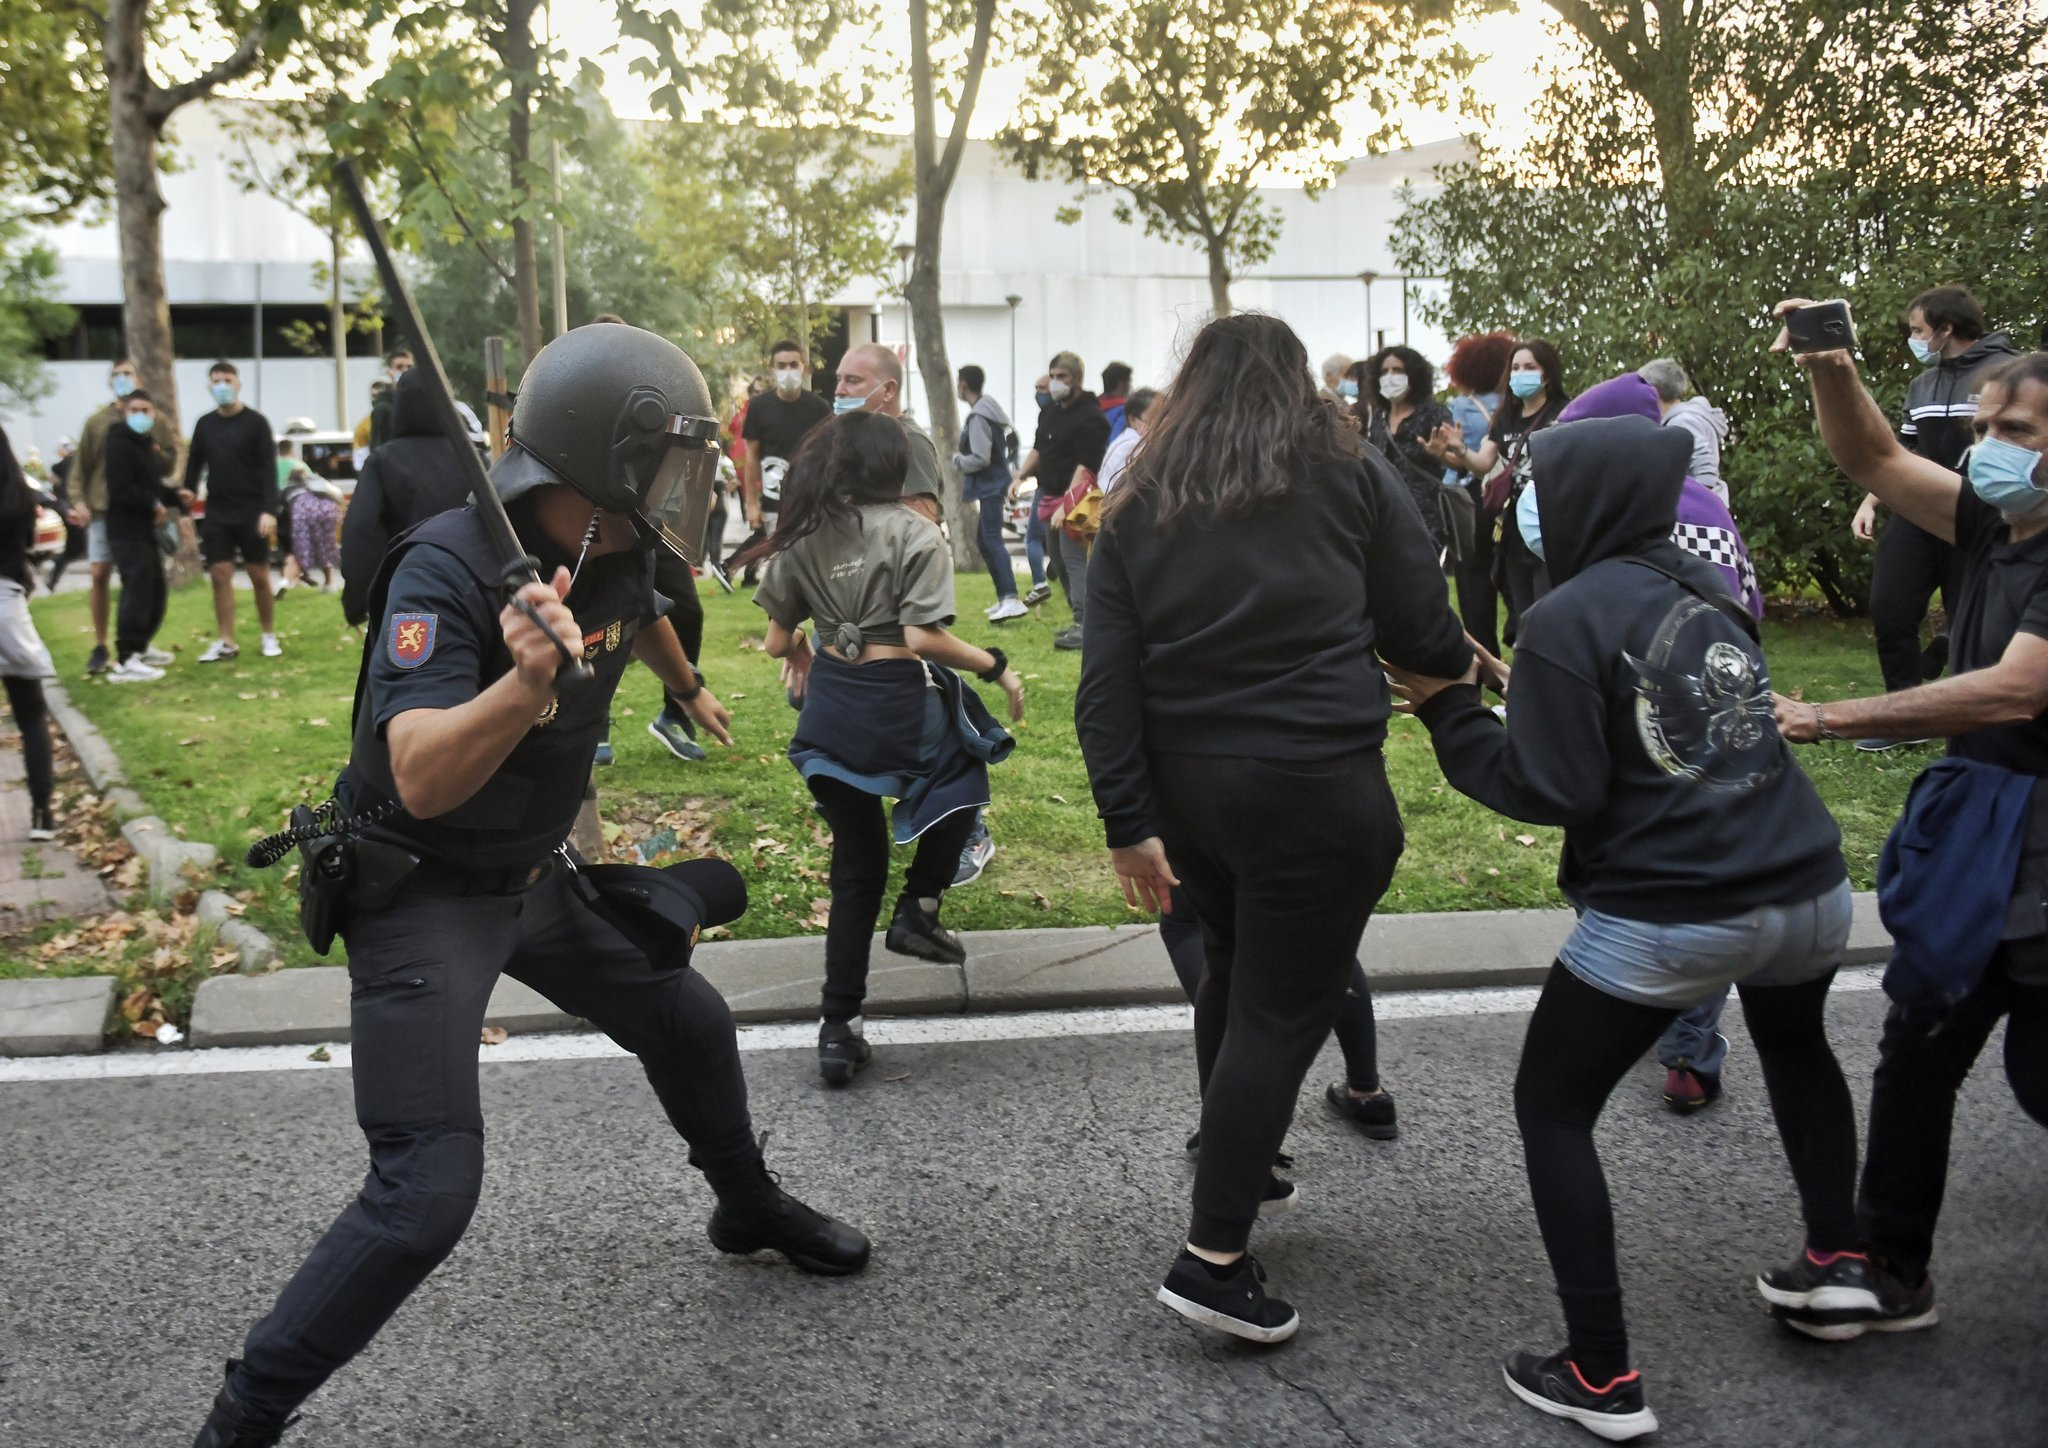 SPAIN – Police violence and crack down on the right to protest